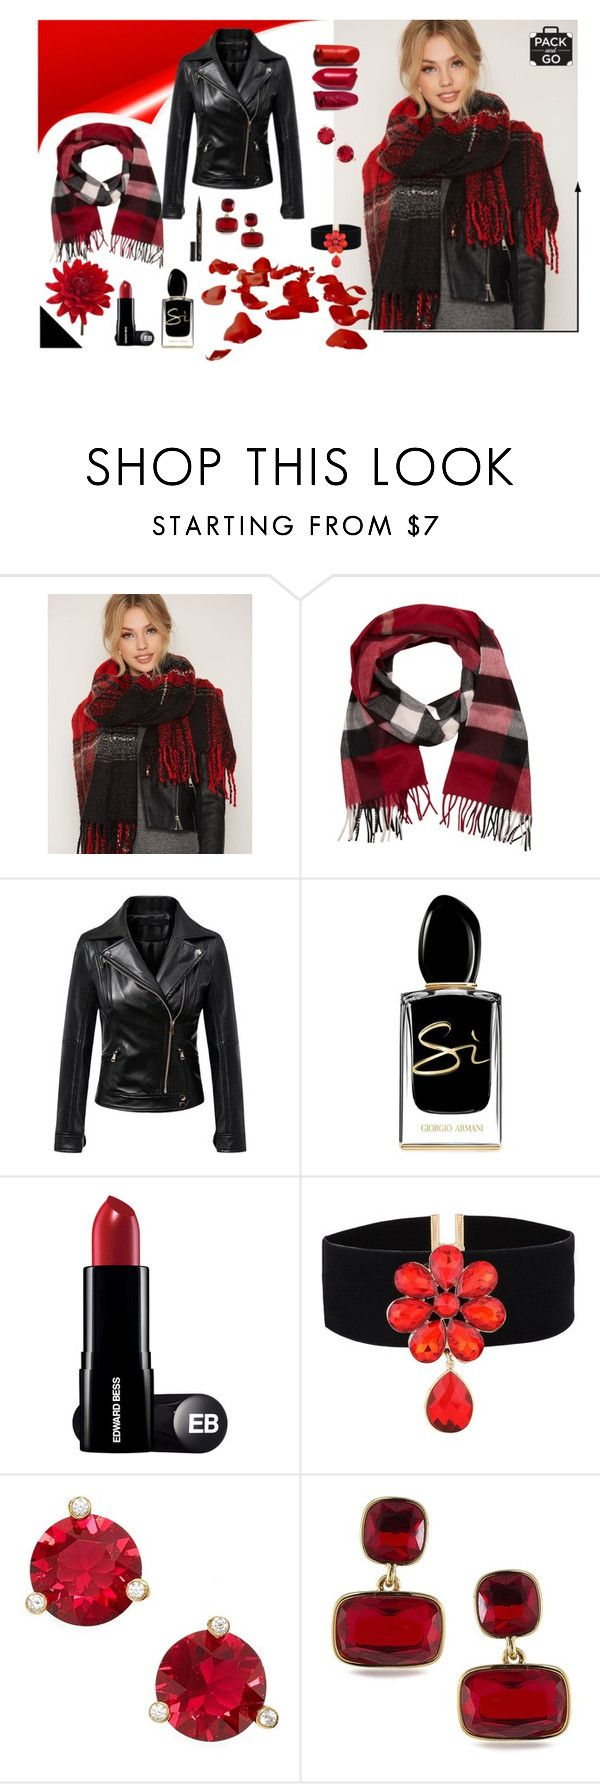 """""""Scarf and leather jacket"""" by majalina123 on Polyvore featuring Mode, Pieces, Burberry, Giorgio Armani, Kate Spade, Lauren Ralph Lauren, Smith & Cult und winterstyle"""